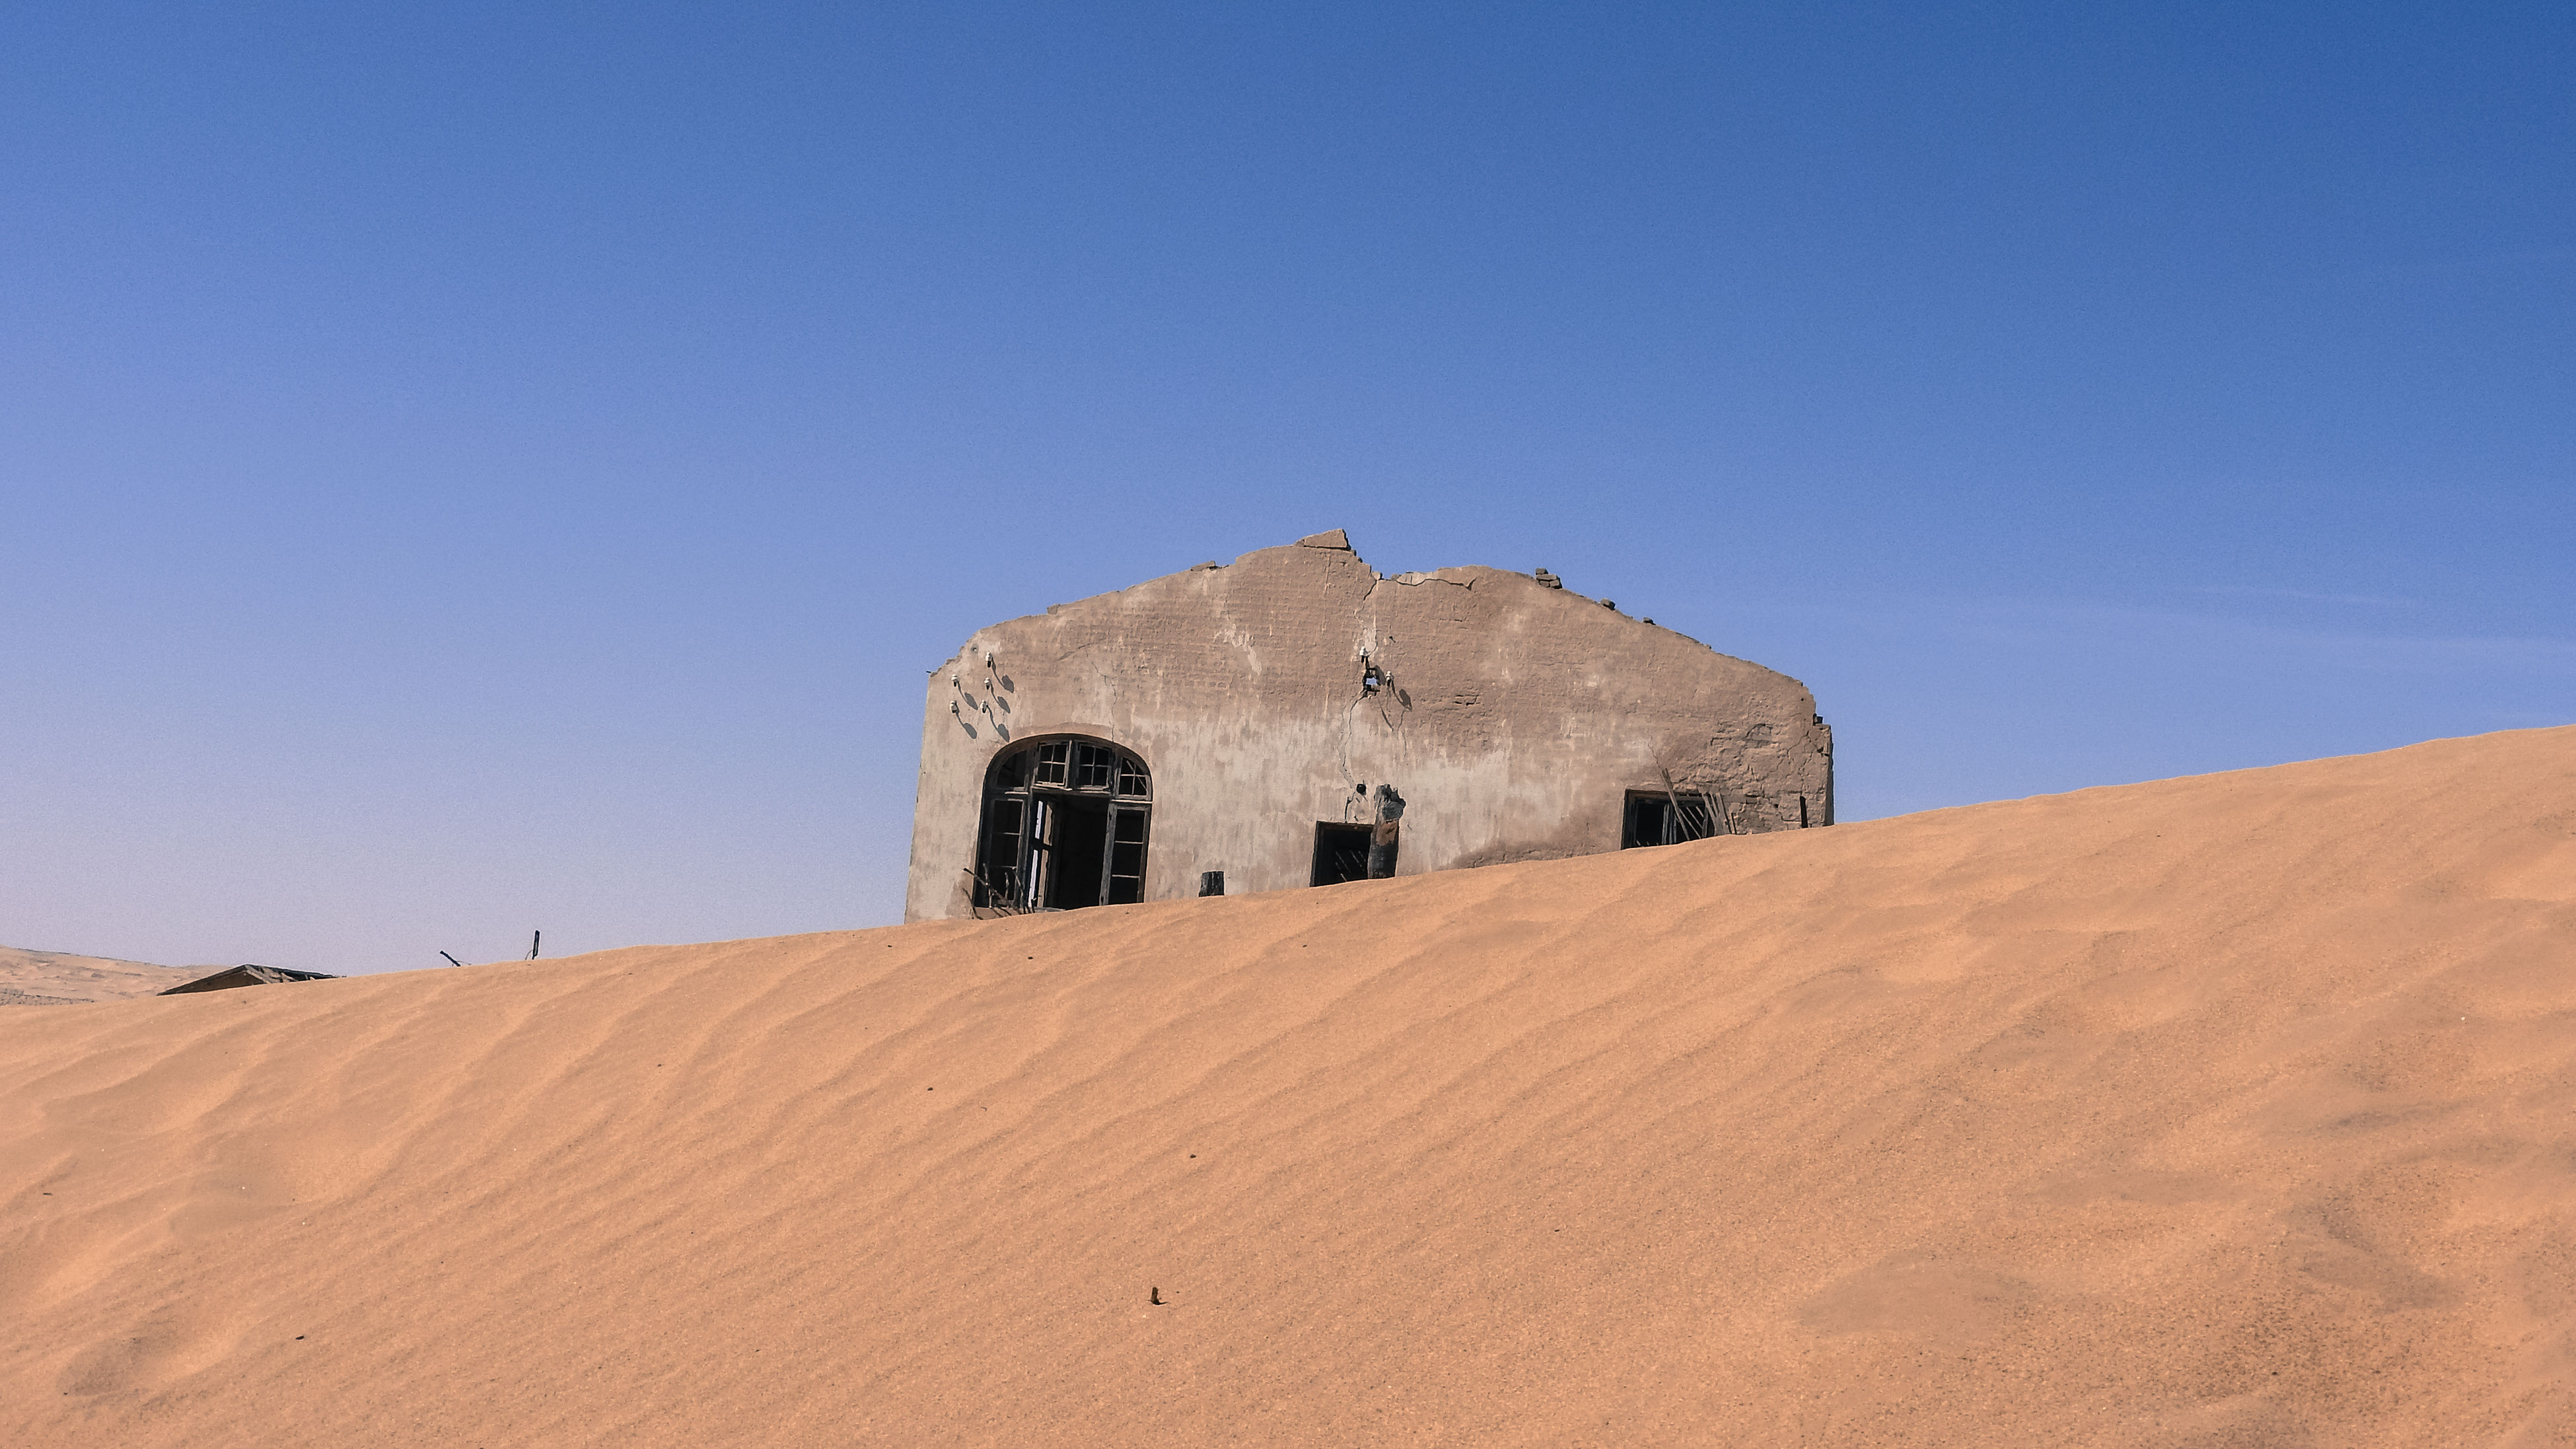 architecture, built structure, building exterior, blue, low angle view, clear sky, copy space, landscape, sand, hill, outdoors, tranquility, tranquil scene, summer, solitude, day, sky, rural scene, remote, no people, surface level, chapel, fort, non-urban scene, history, rock formation